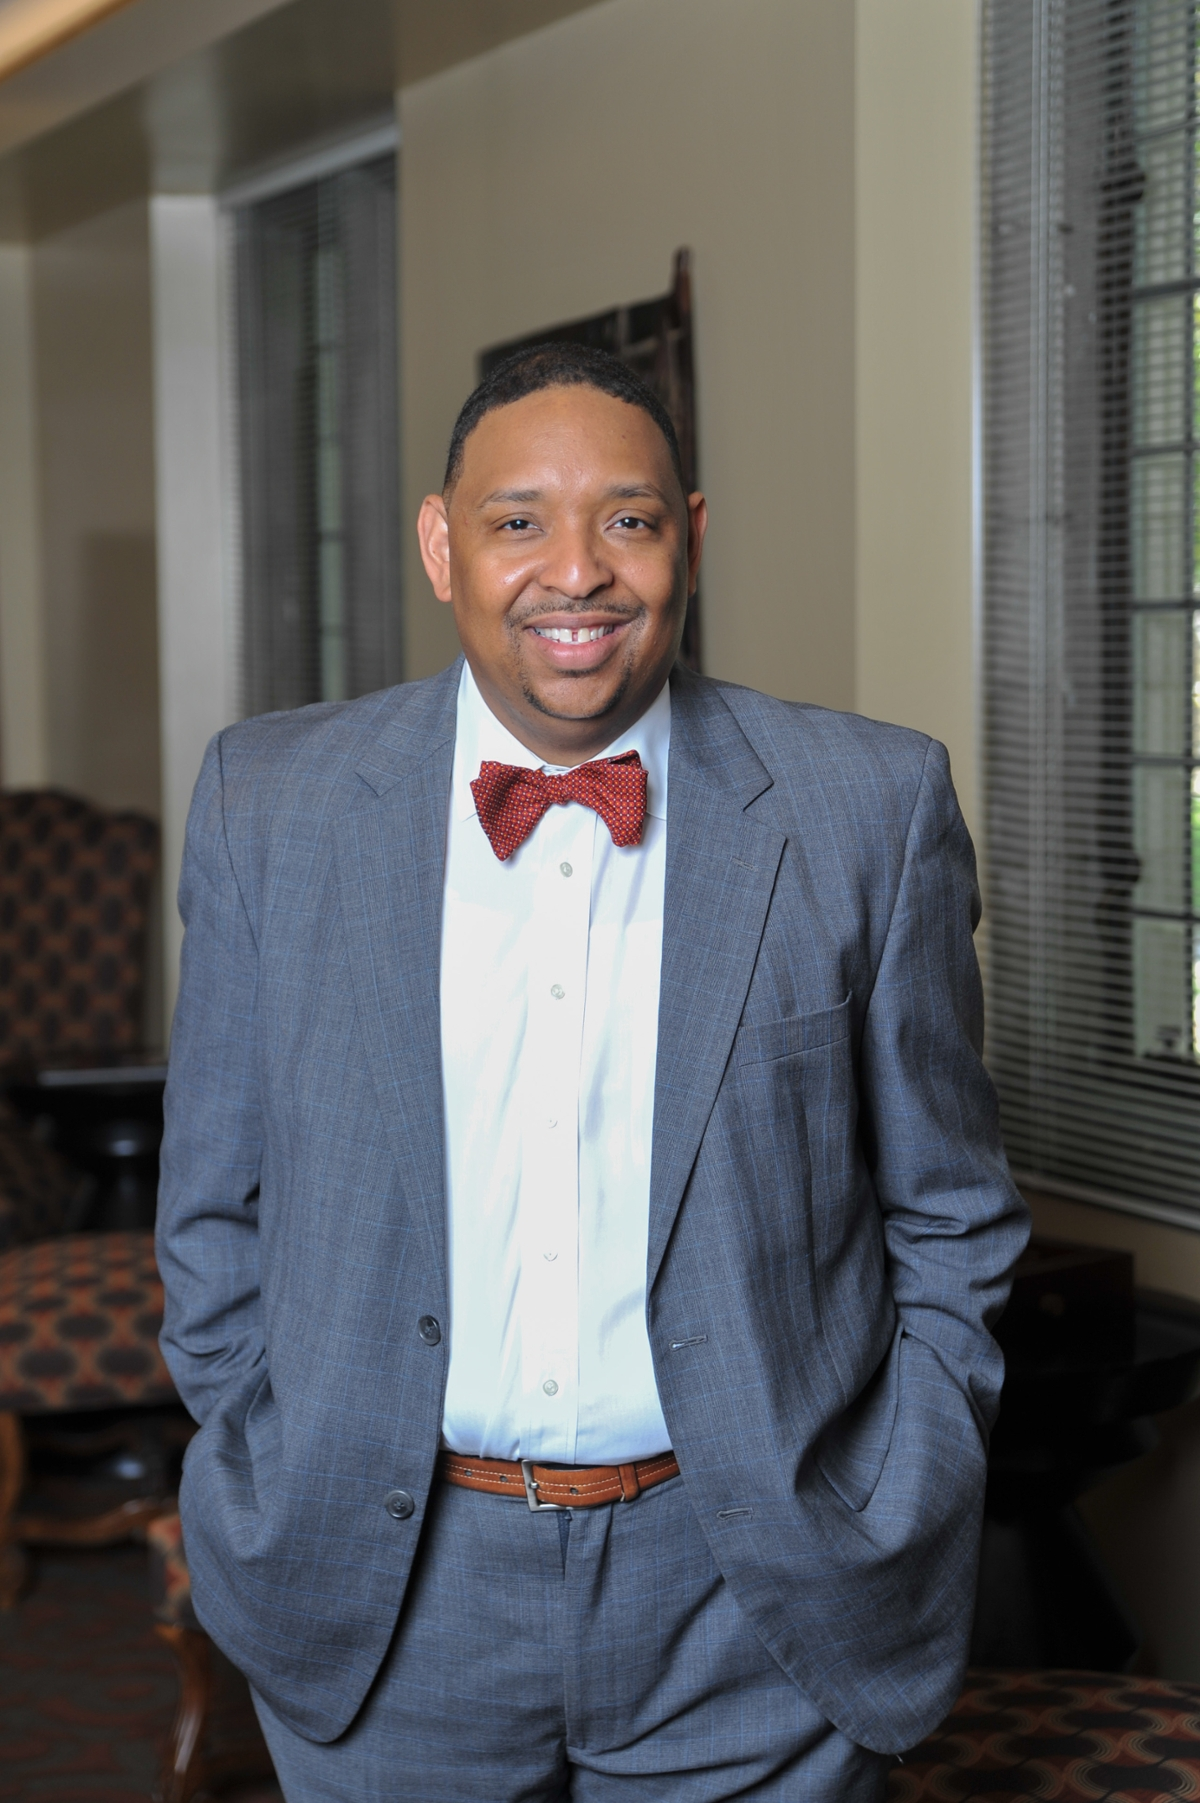 Unc School Of Nursing >> UNCW Names Sean Palmer Director of the Upperman African American Cultural Center